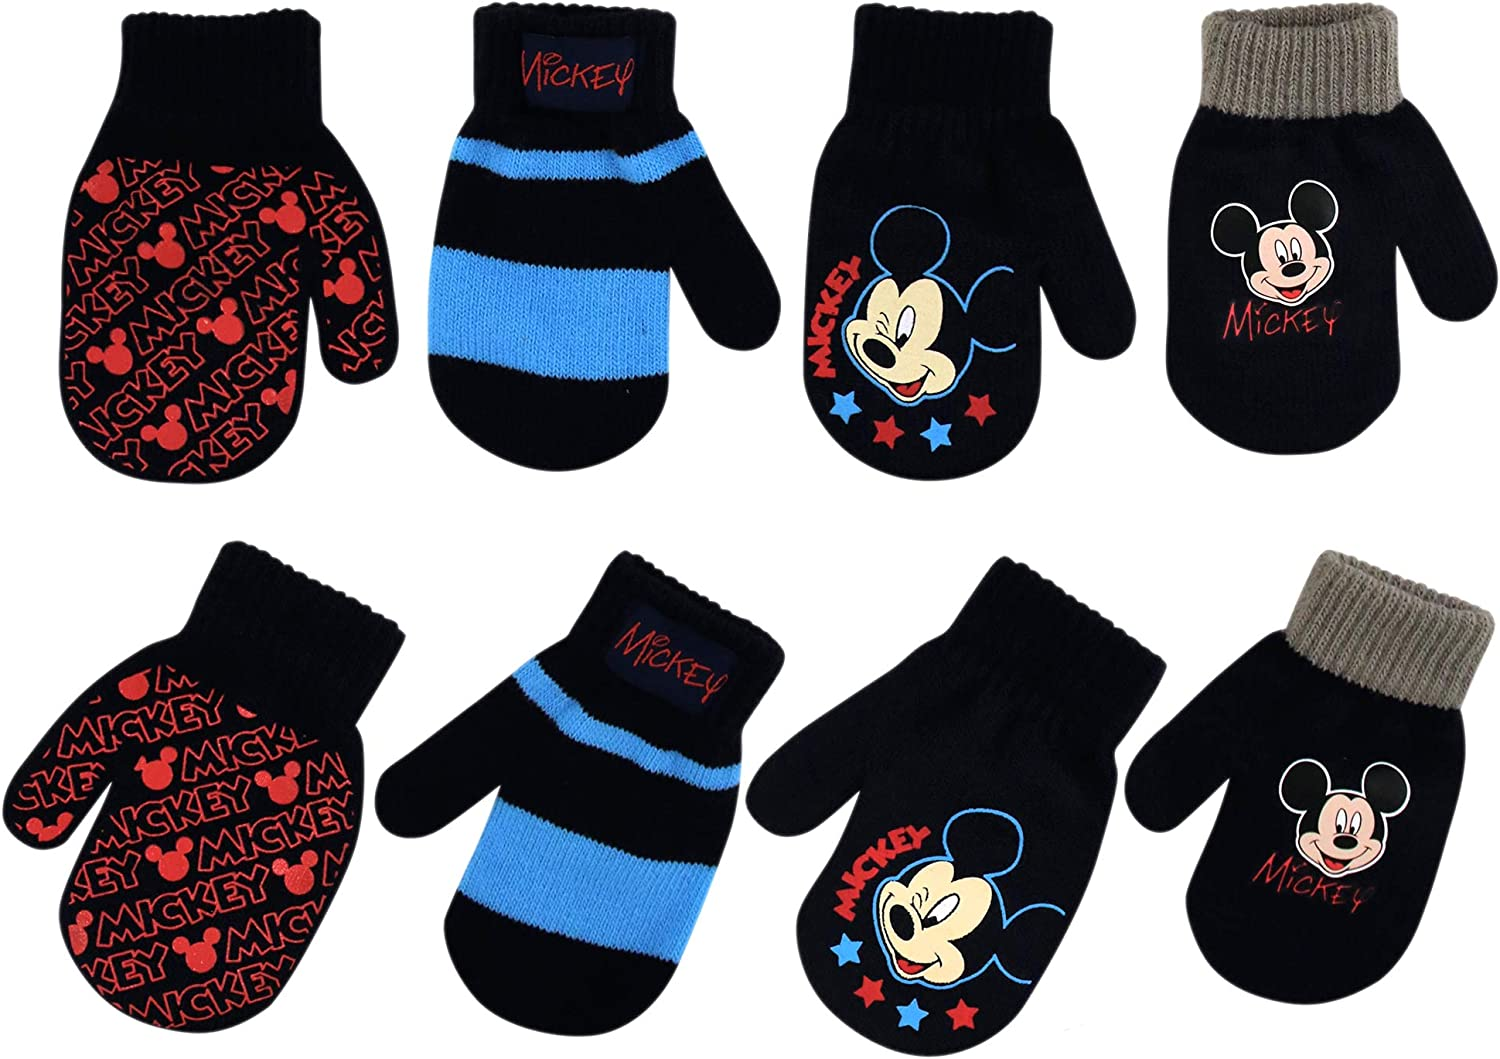 Disney Boys 4 Pack Mitten or Glove Set: Mickey Mouse, Cars Lighting McQueen (Age 2-7): Clothing